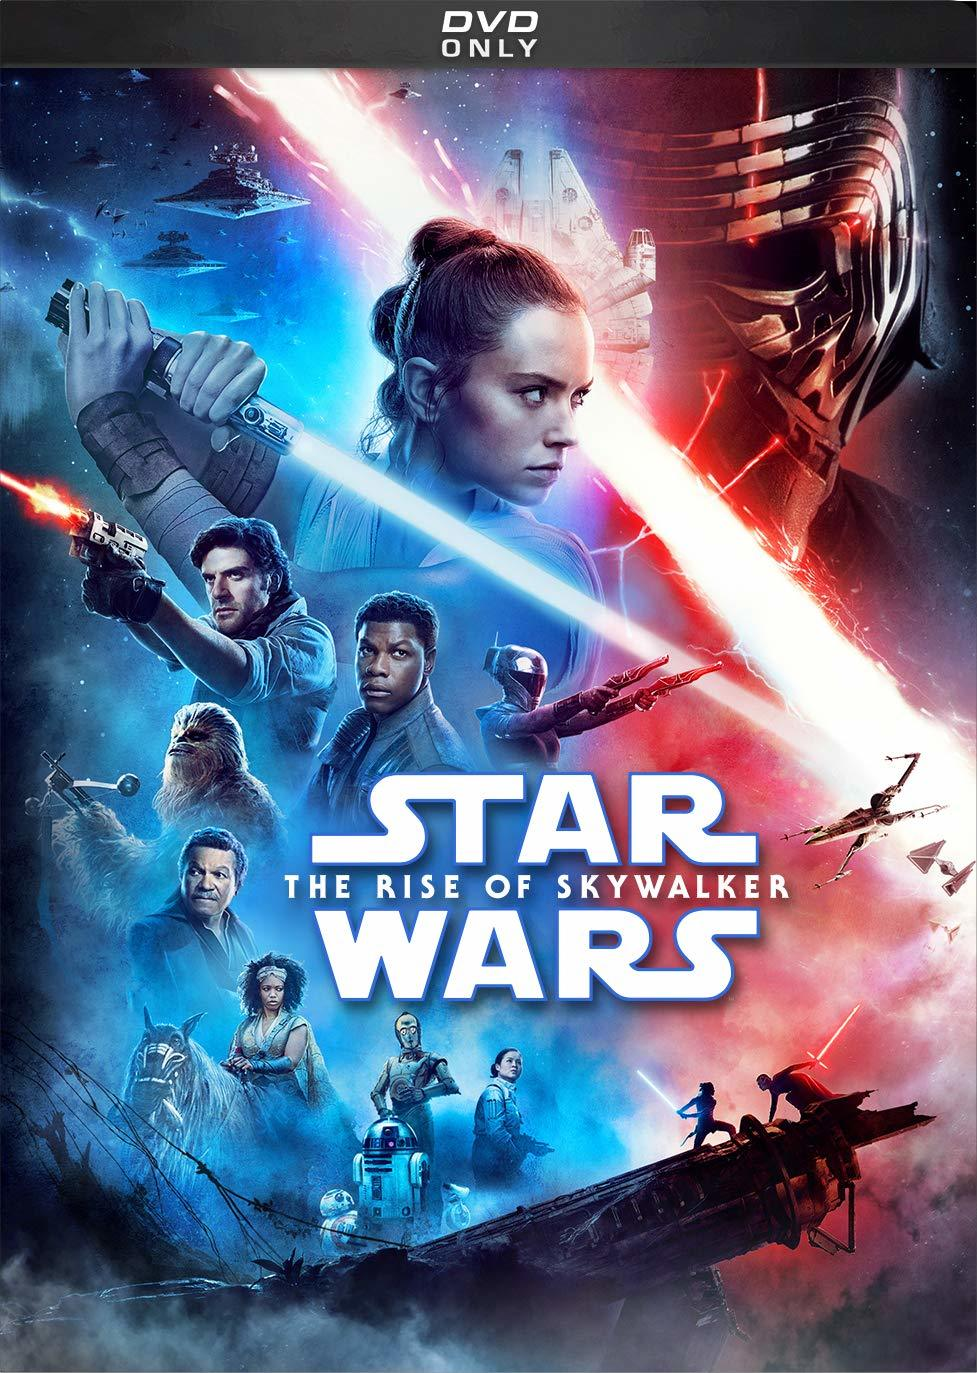 Star Wars: The Rise of Skywalker (video)